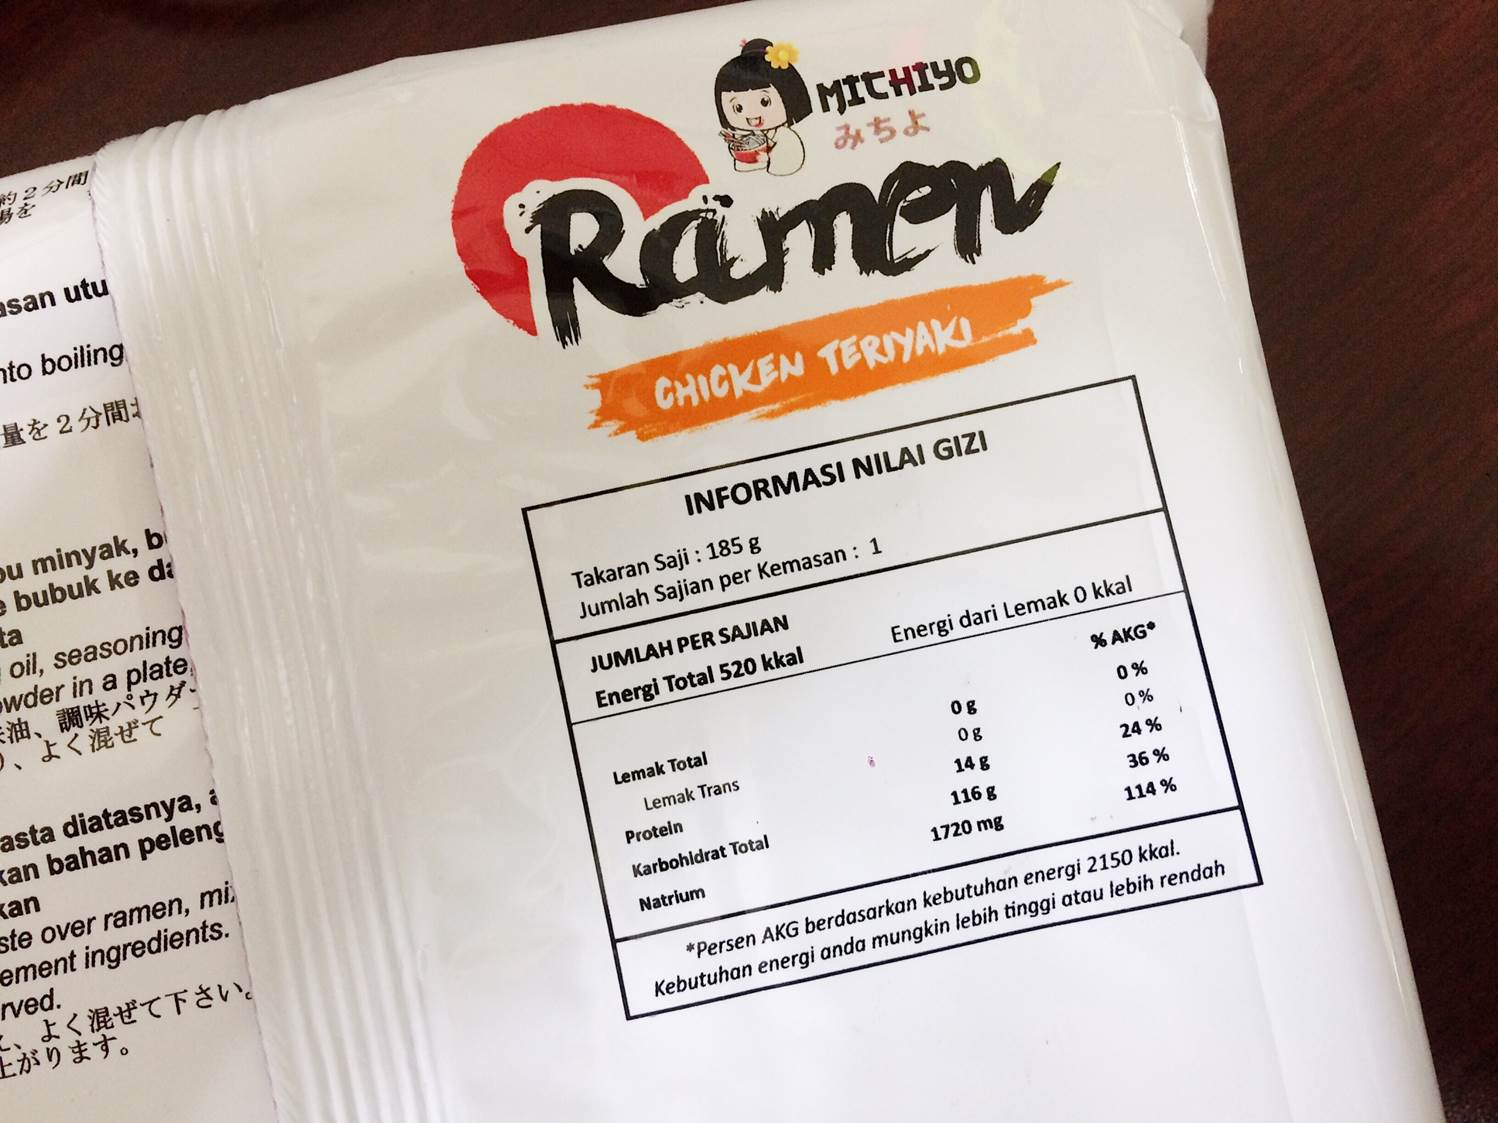 michiyo ramen halal ingredients